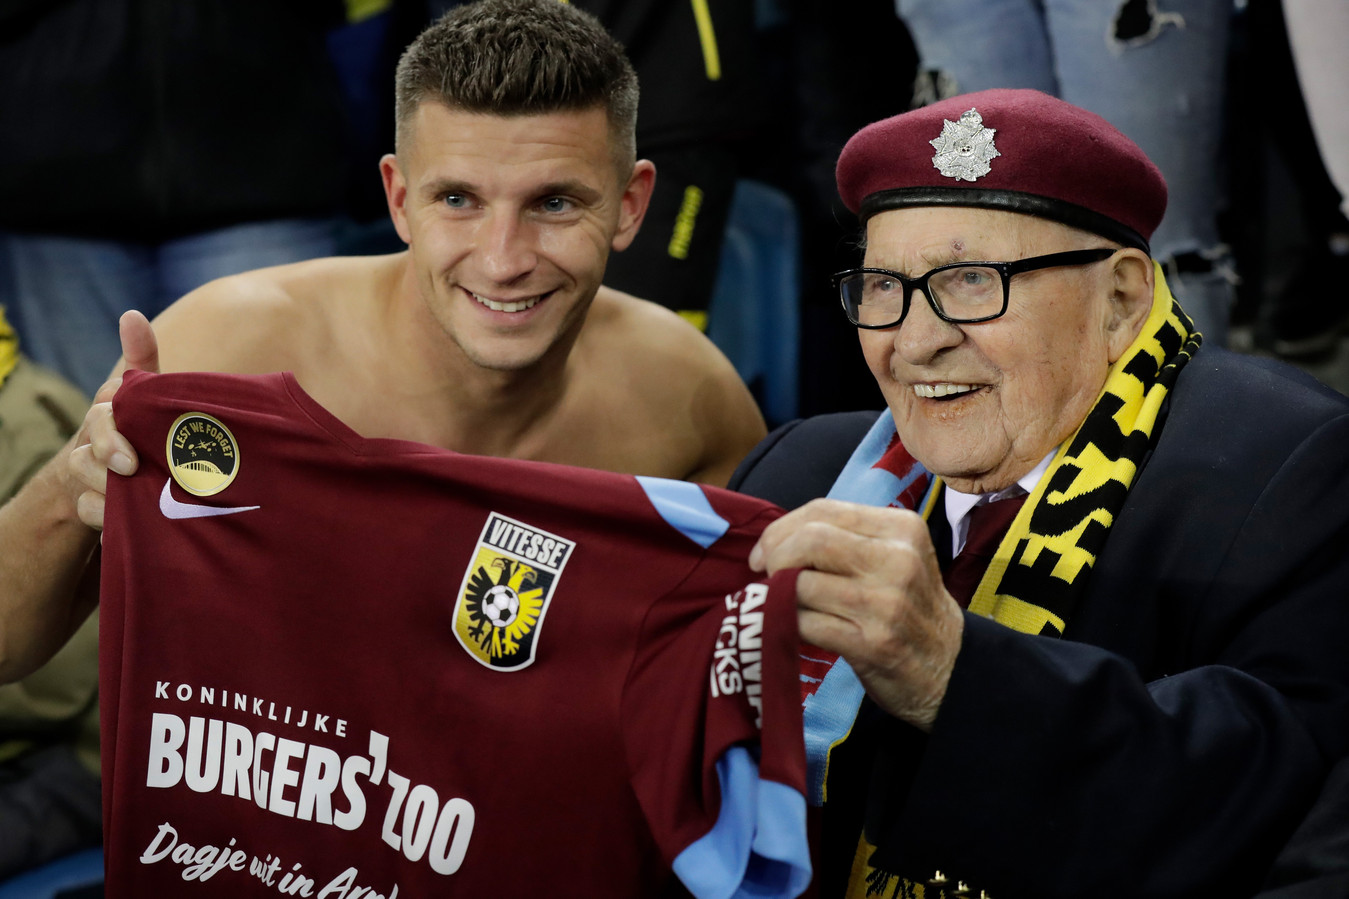 Bryan Linssen of Vitesse gives his shirt away to the airborne World War II veterans who visiting the Match of Vitesse during Vitesse - Fortuna Sittard NETHERLANDS, BELGIUM, LUXEMBURG ONLY COPYRIGHT BSR/SOCCRATES